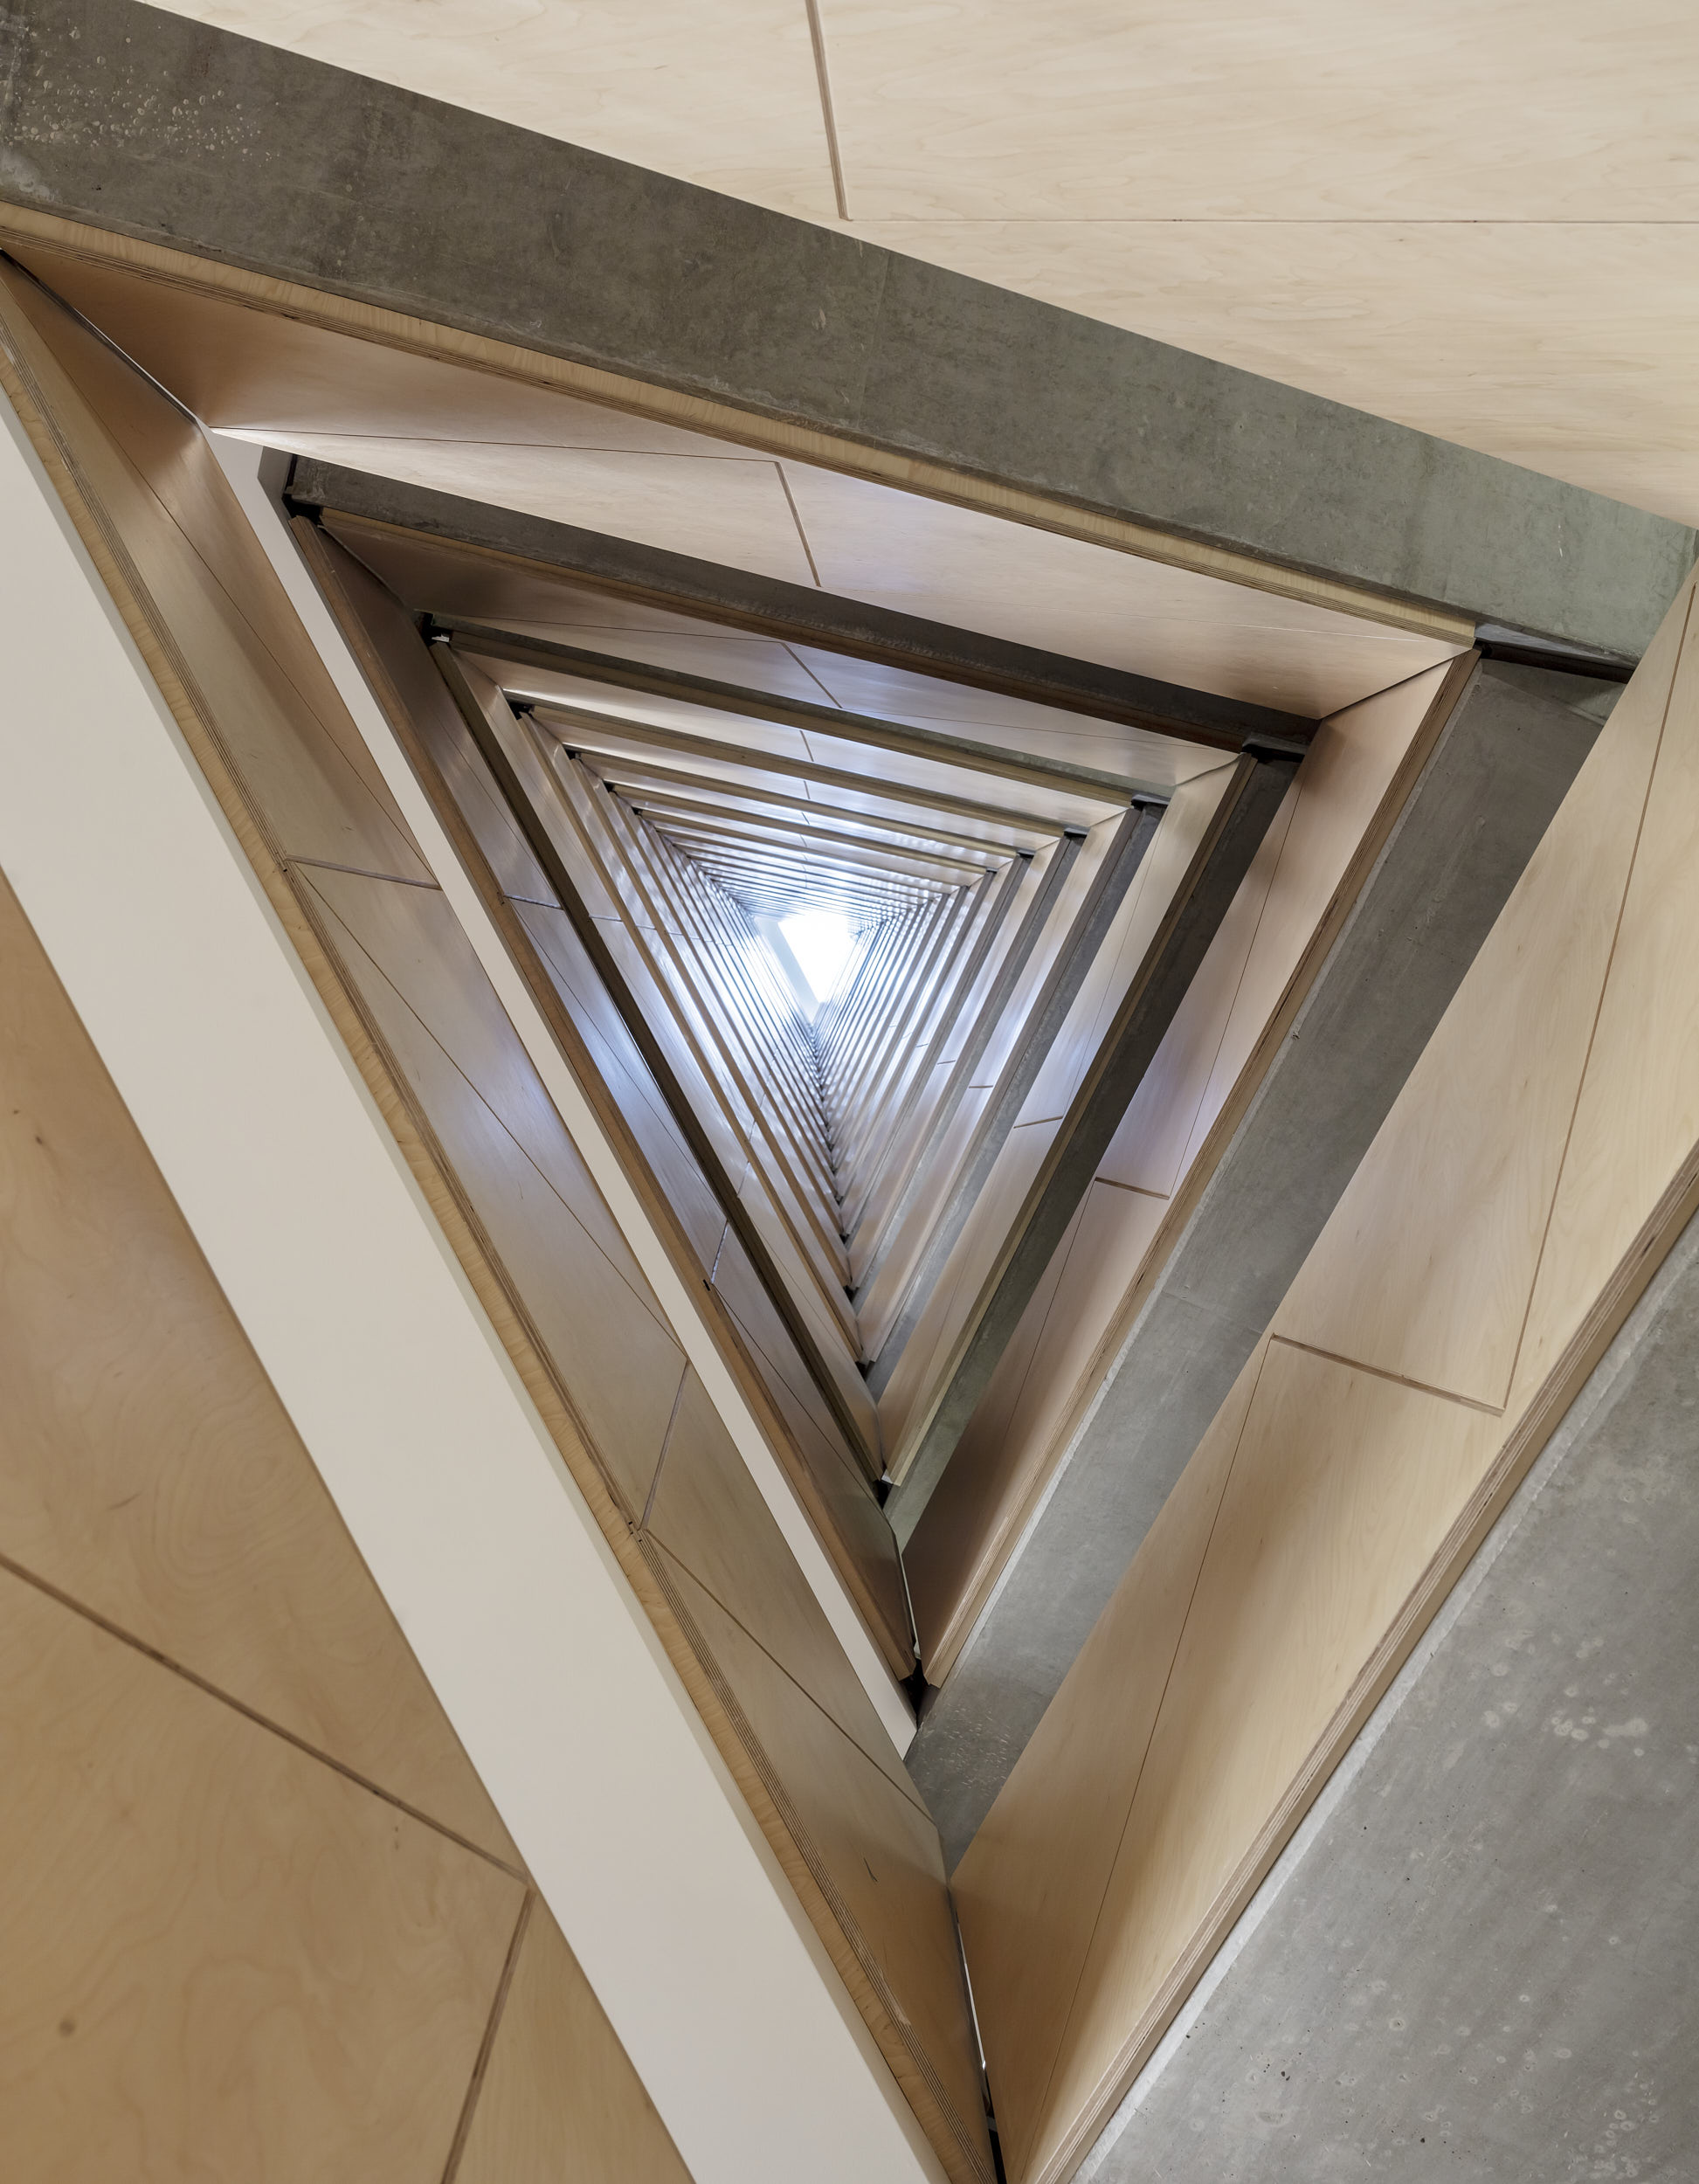 View up the plywood-clad concrete stair to the rooflight.